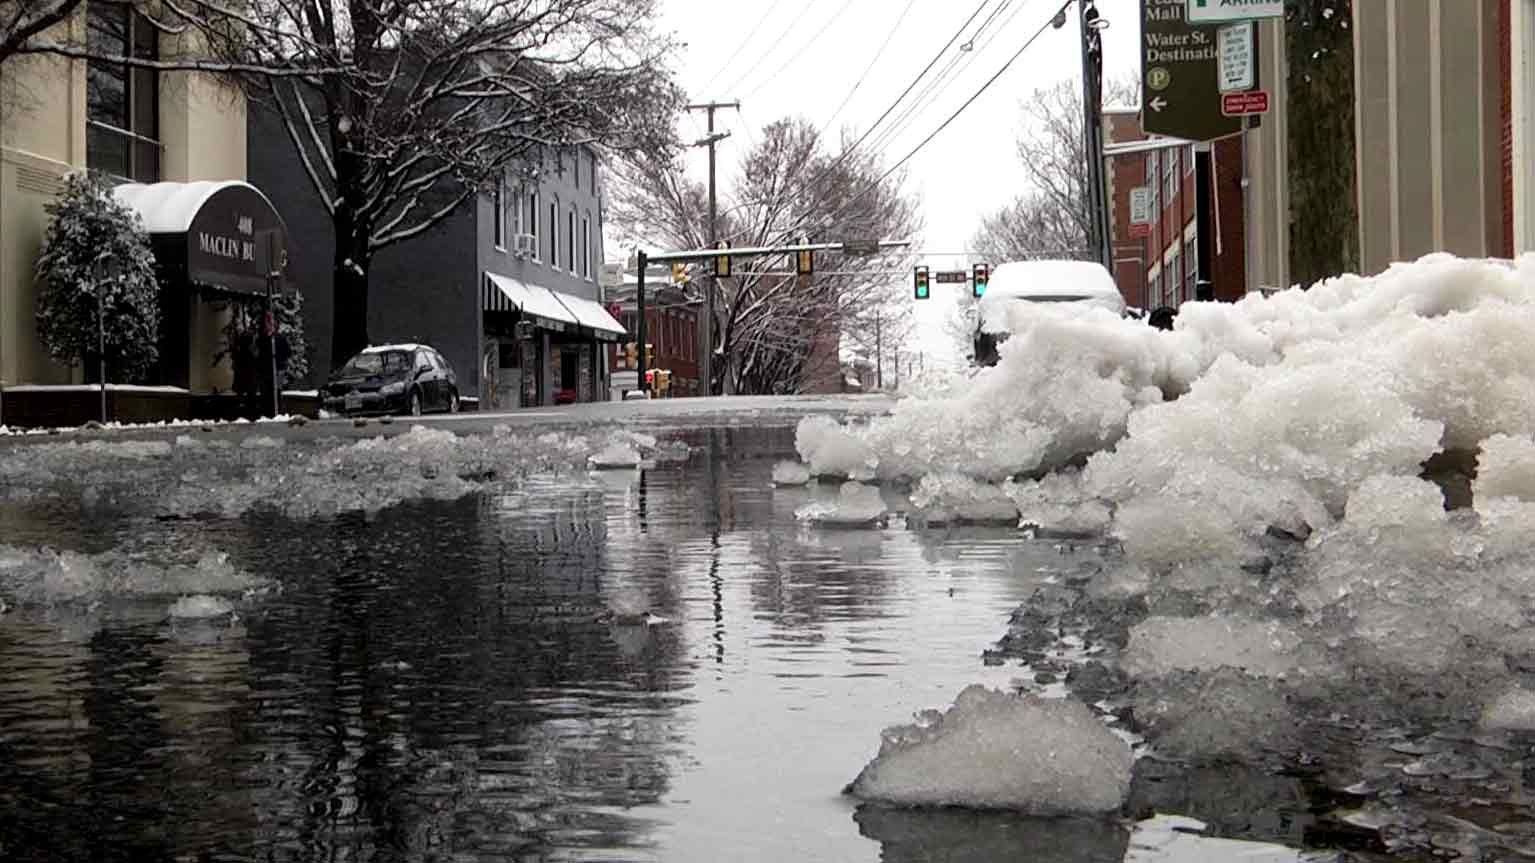 Slush and snow piled on the side of the road in Downtown Charlottesville.